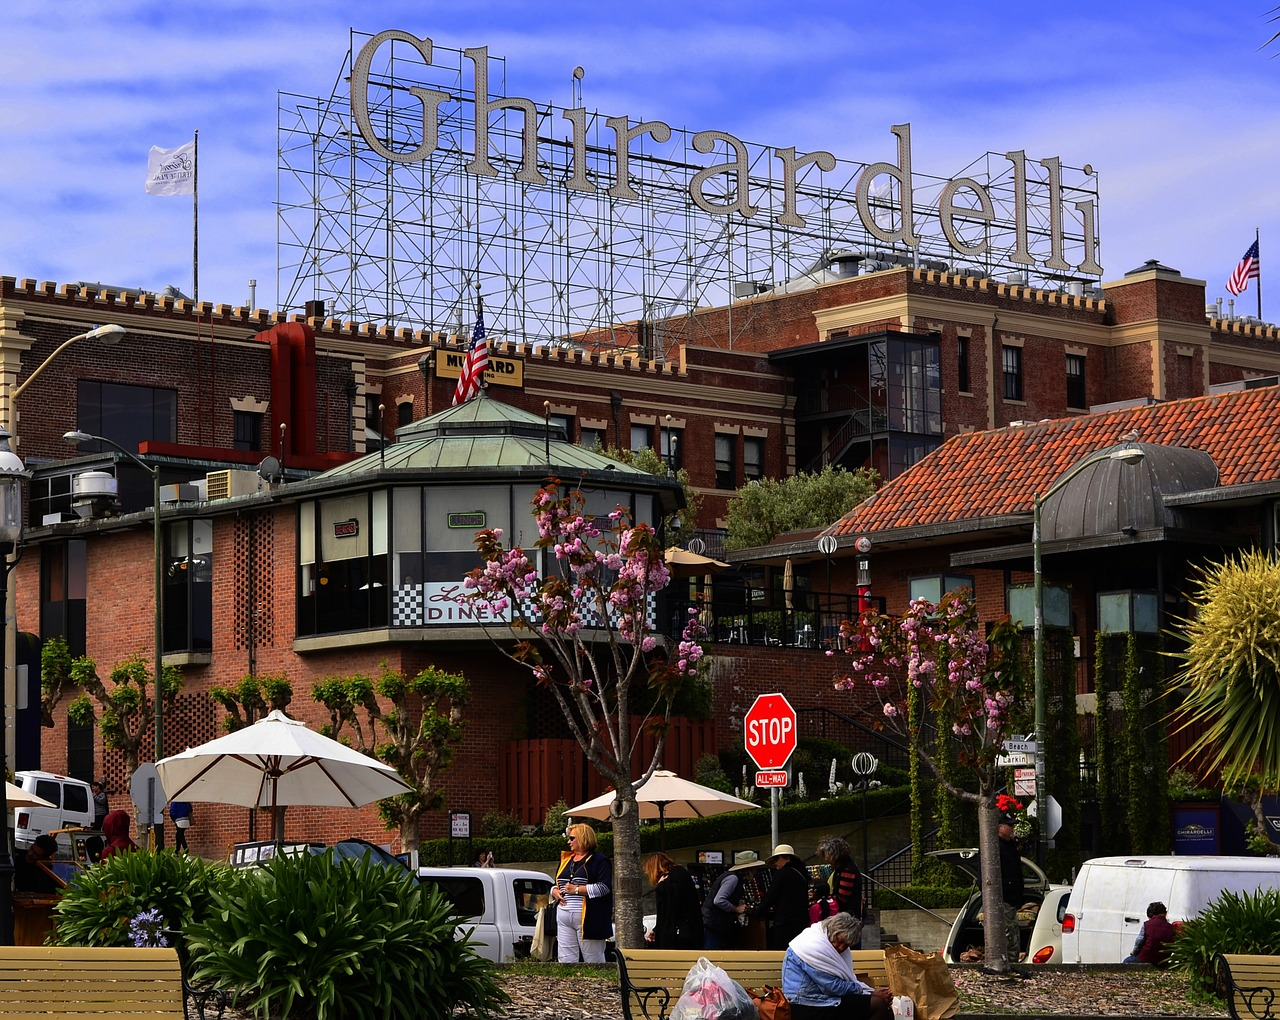 Ghirardelli Square Things to do in San Francisco